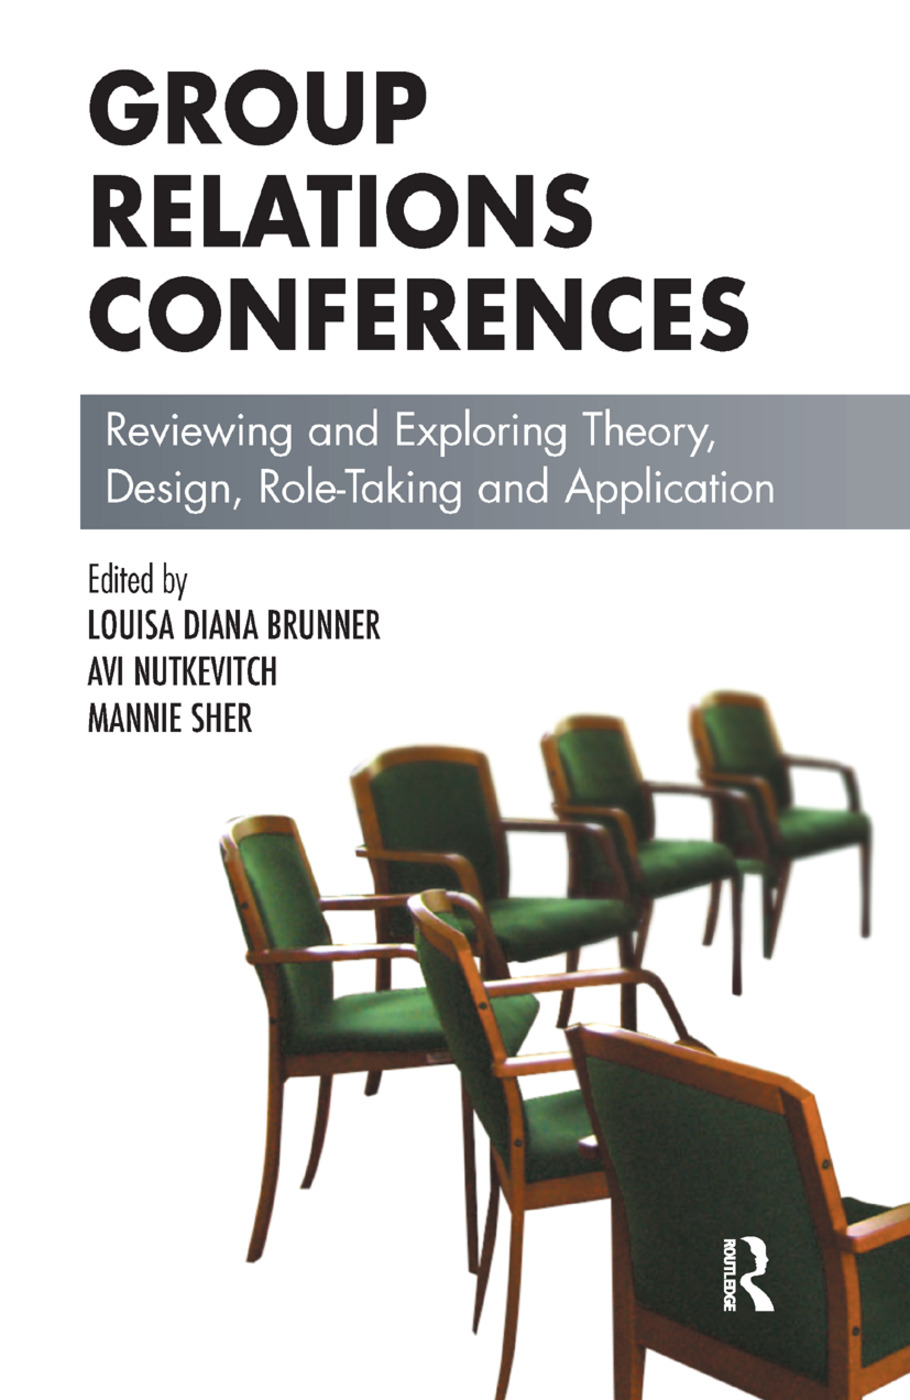 Group Relations Conferences: Reviewing and Exploring Theory, Design, Role-Taking and Application, 1st Edition (Hardback) book cover